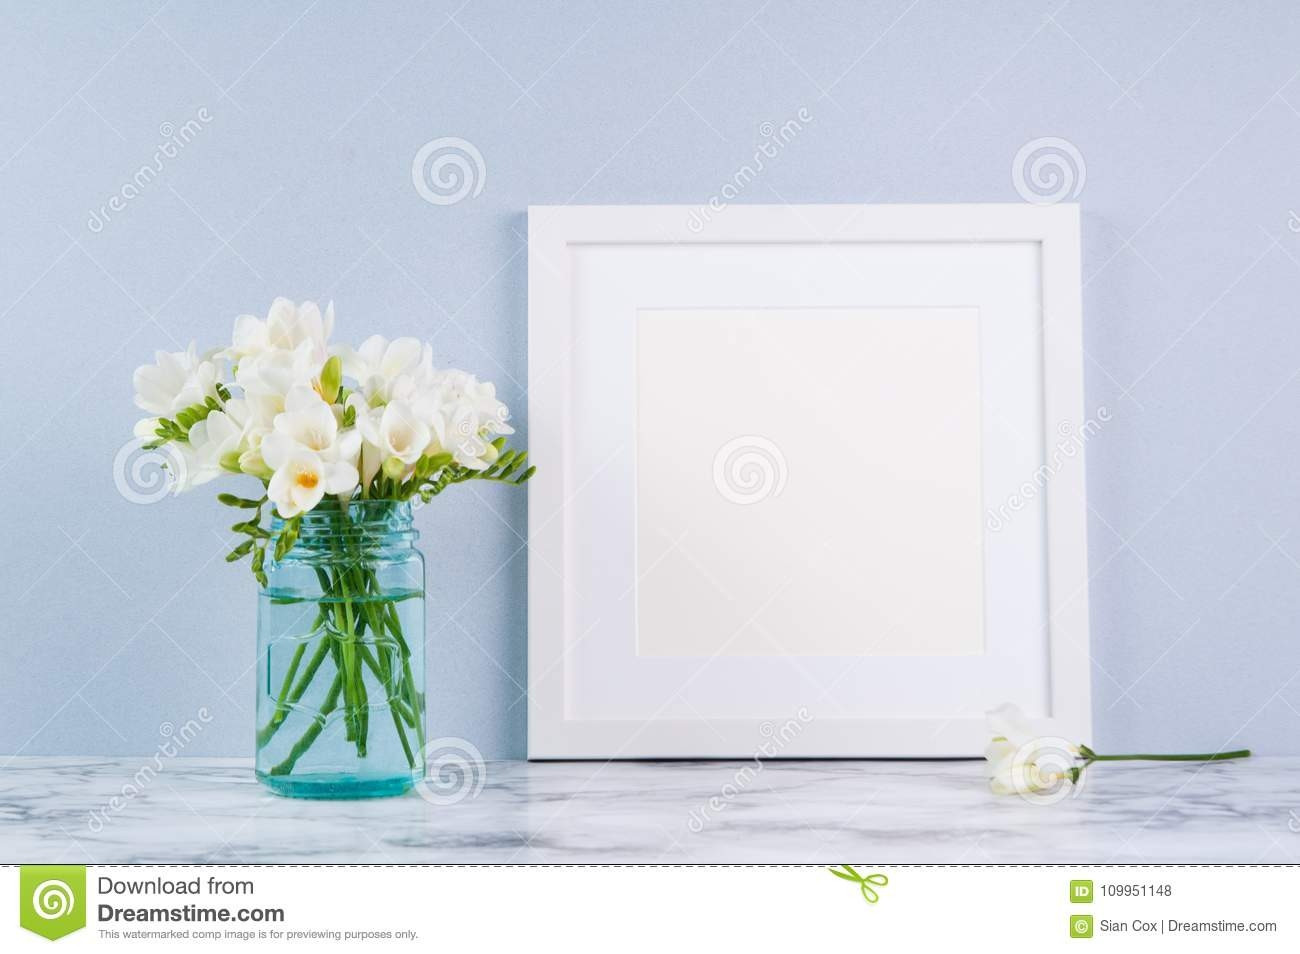 Blue Table Vase Of 27 Beautiful Flower Arrangements Square Vases Flower Decoration Ideas Throughout Flower Arrangements Square Vases Luxury Frame Mockup Stock Photo Image Of Mock Fressia Blue